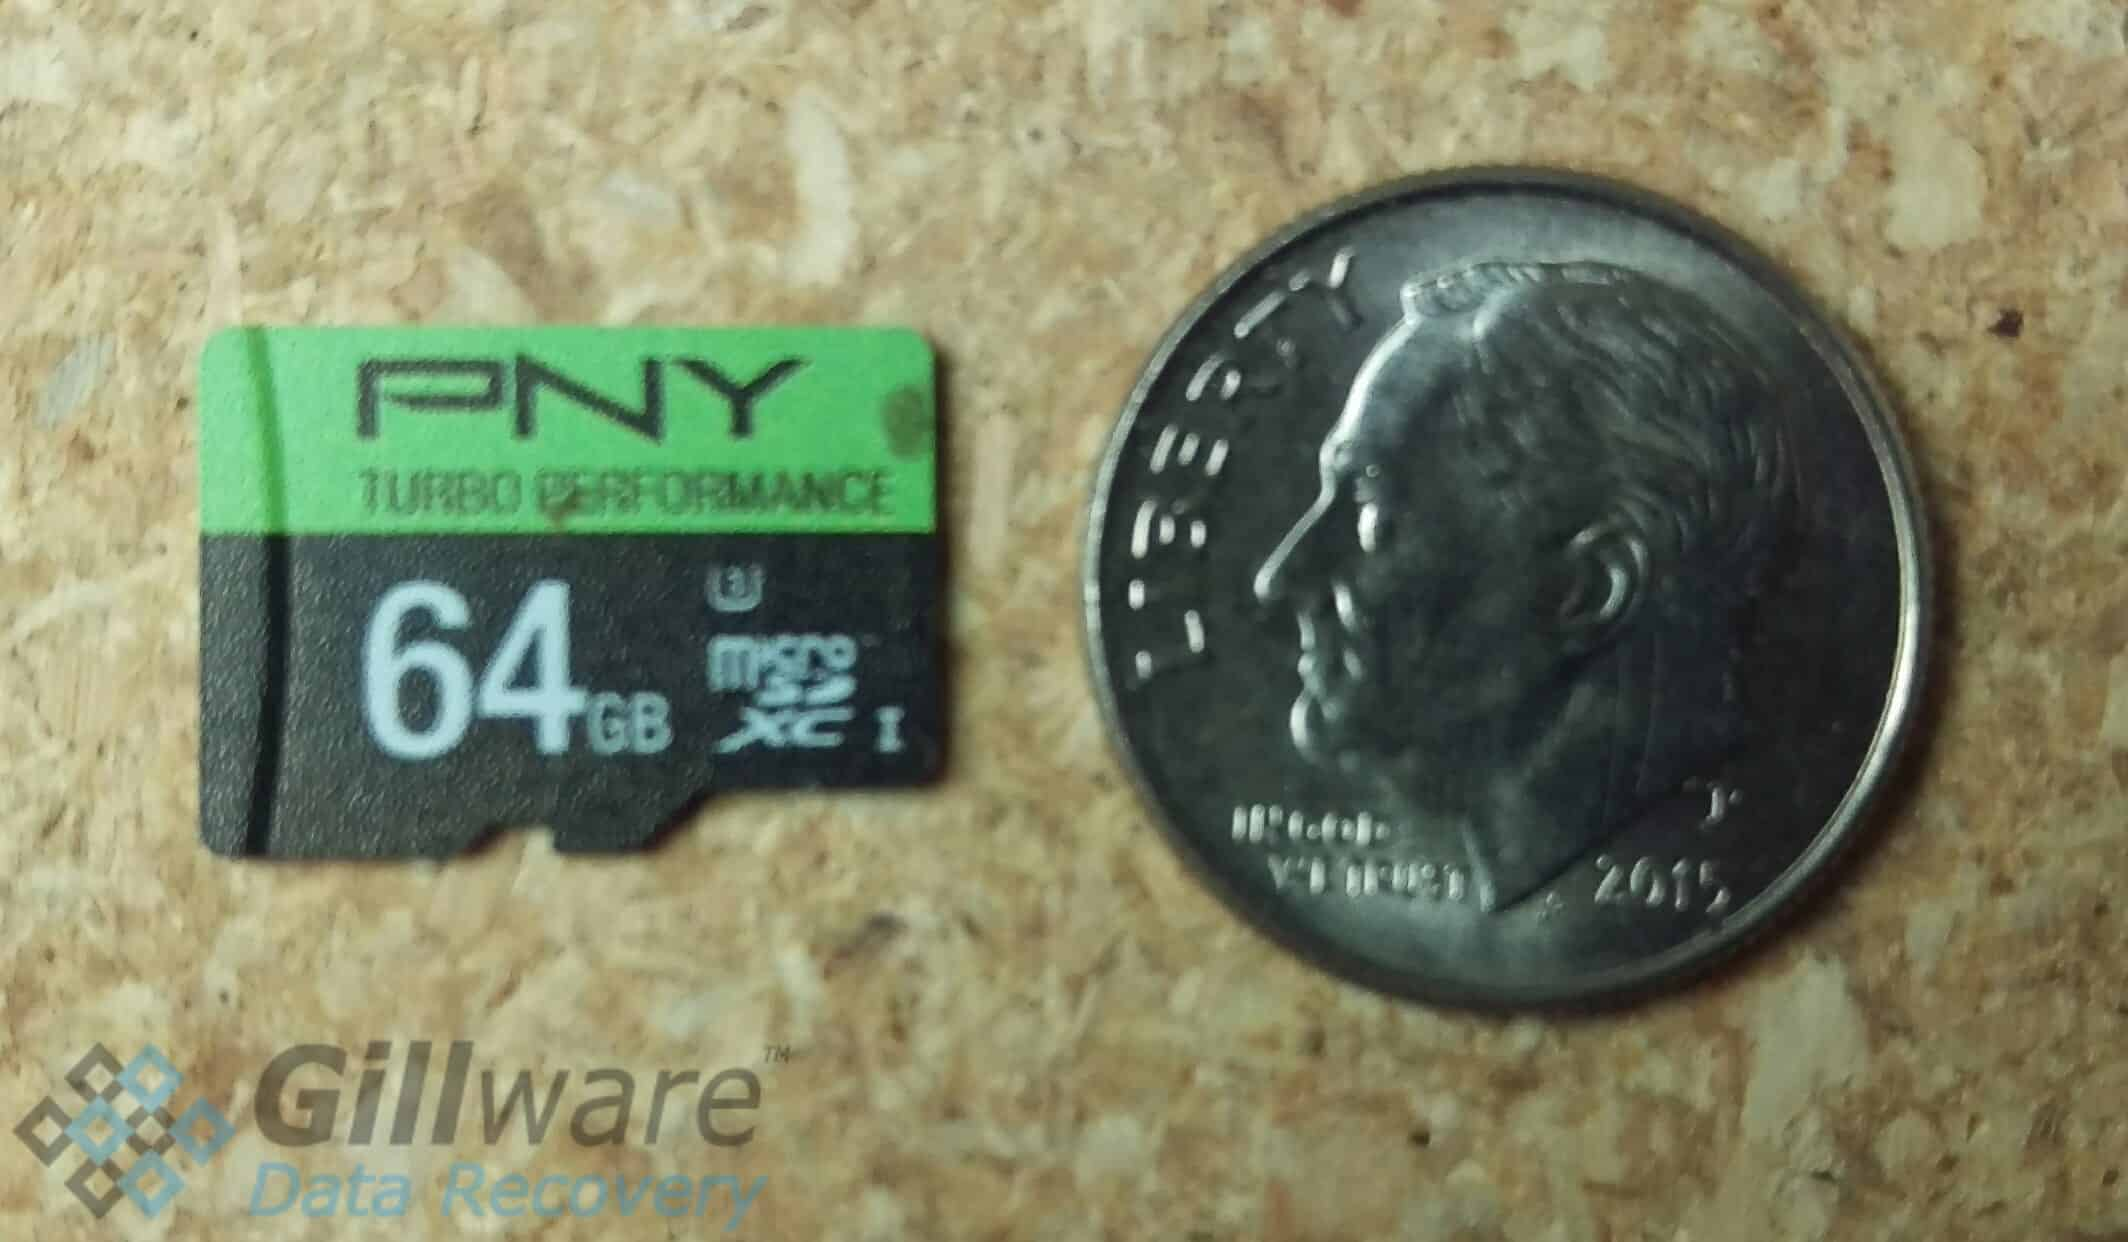 The client's PNY microSD card, next to a dime for scale.